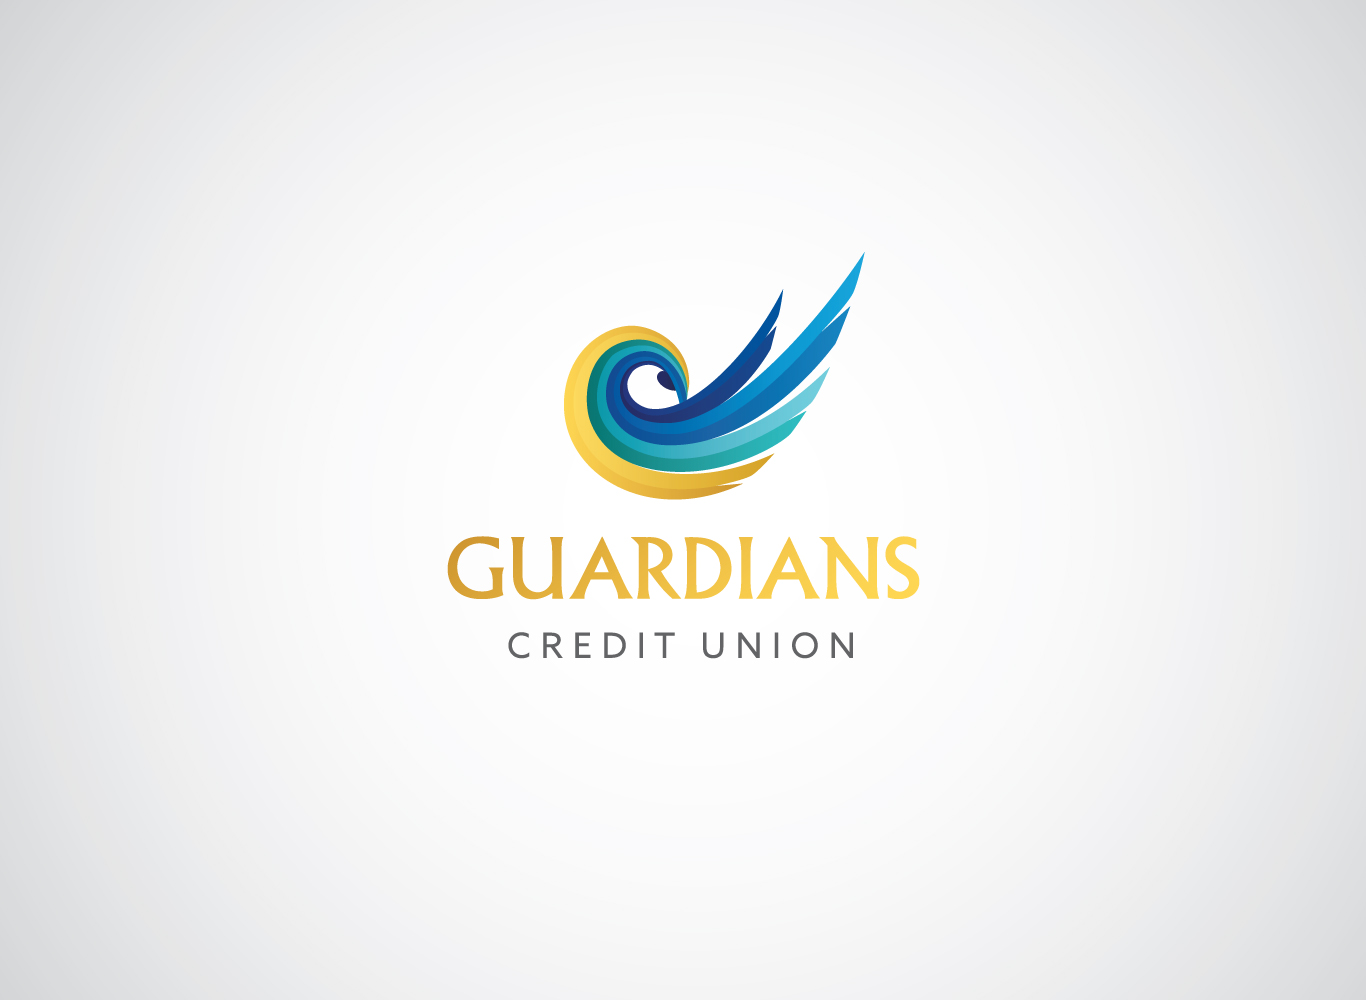 After; The new Guardians Credit Union logo.